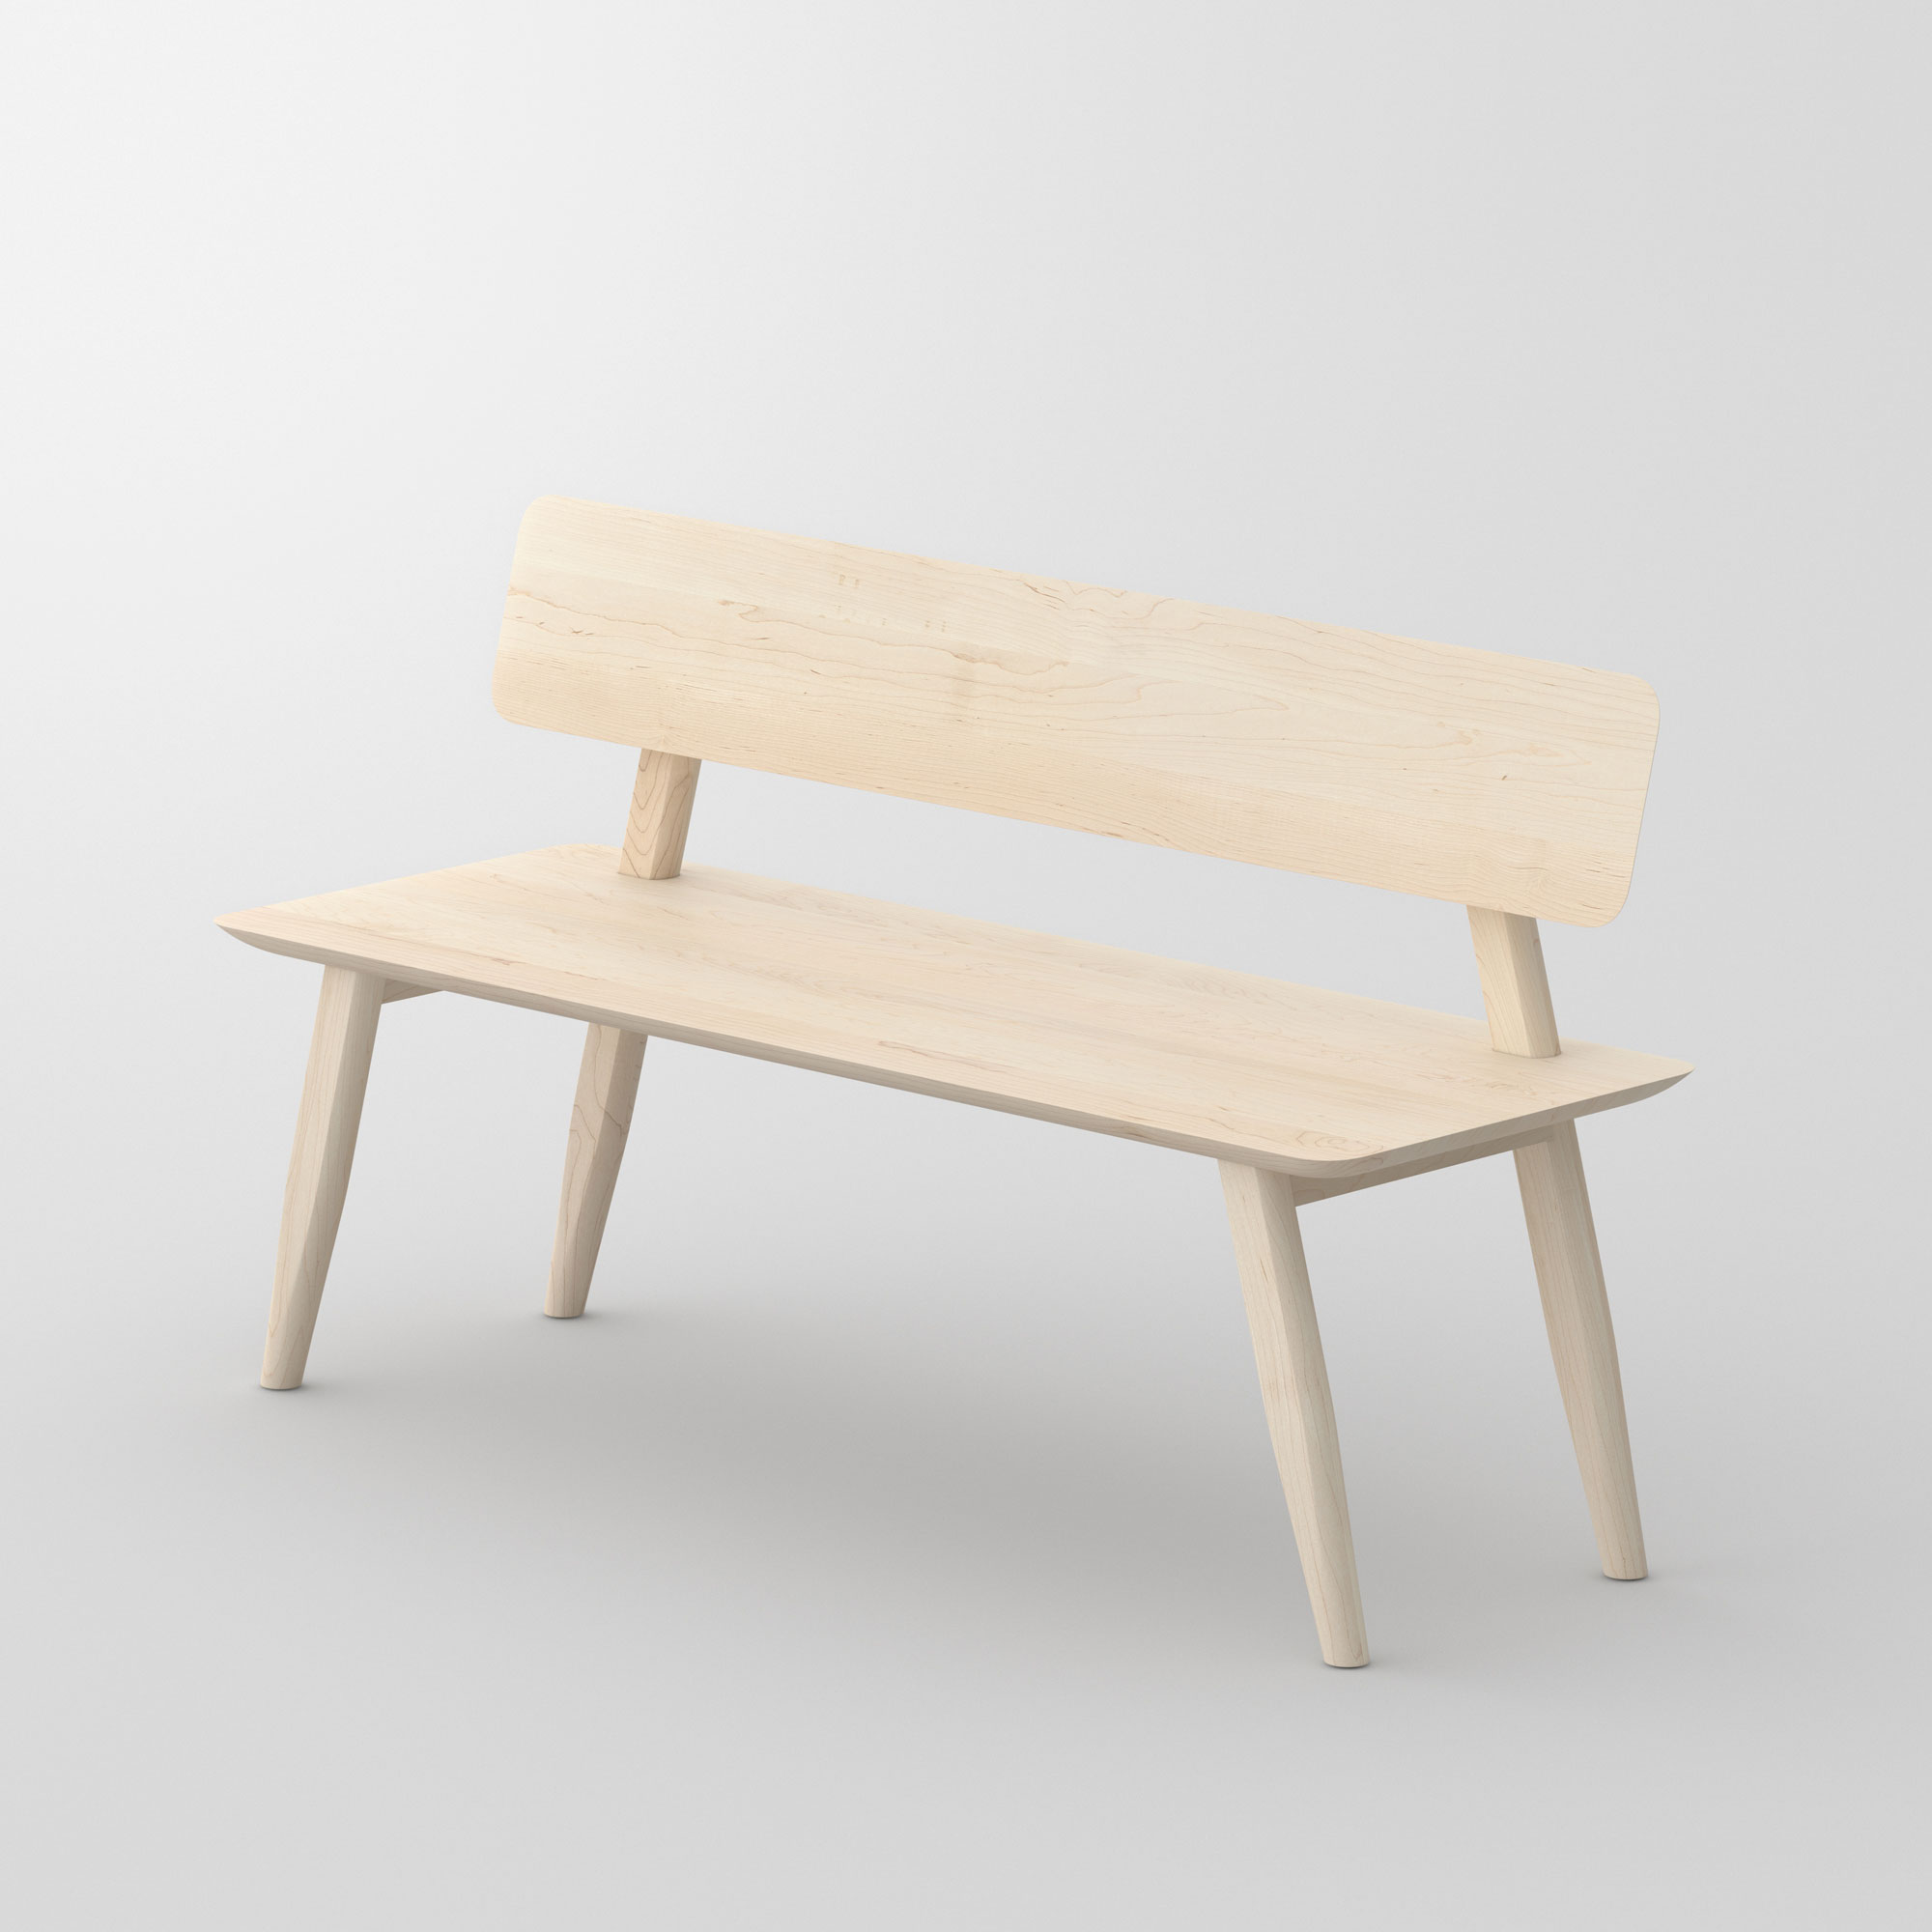 Bench with Back AETAS RL cam2 custom made in solid wood by vitamin design